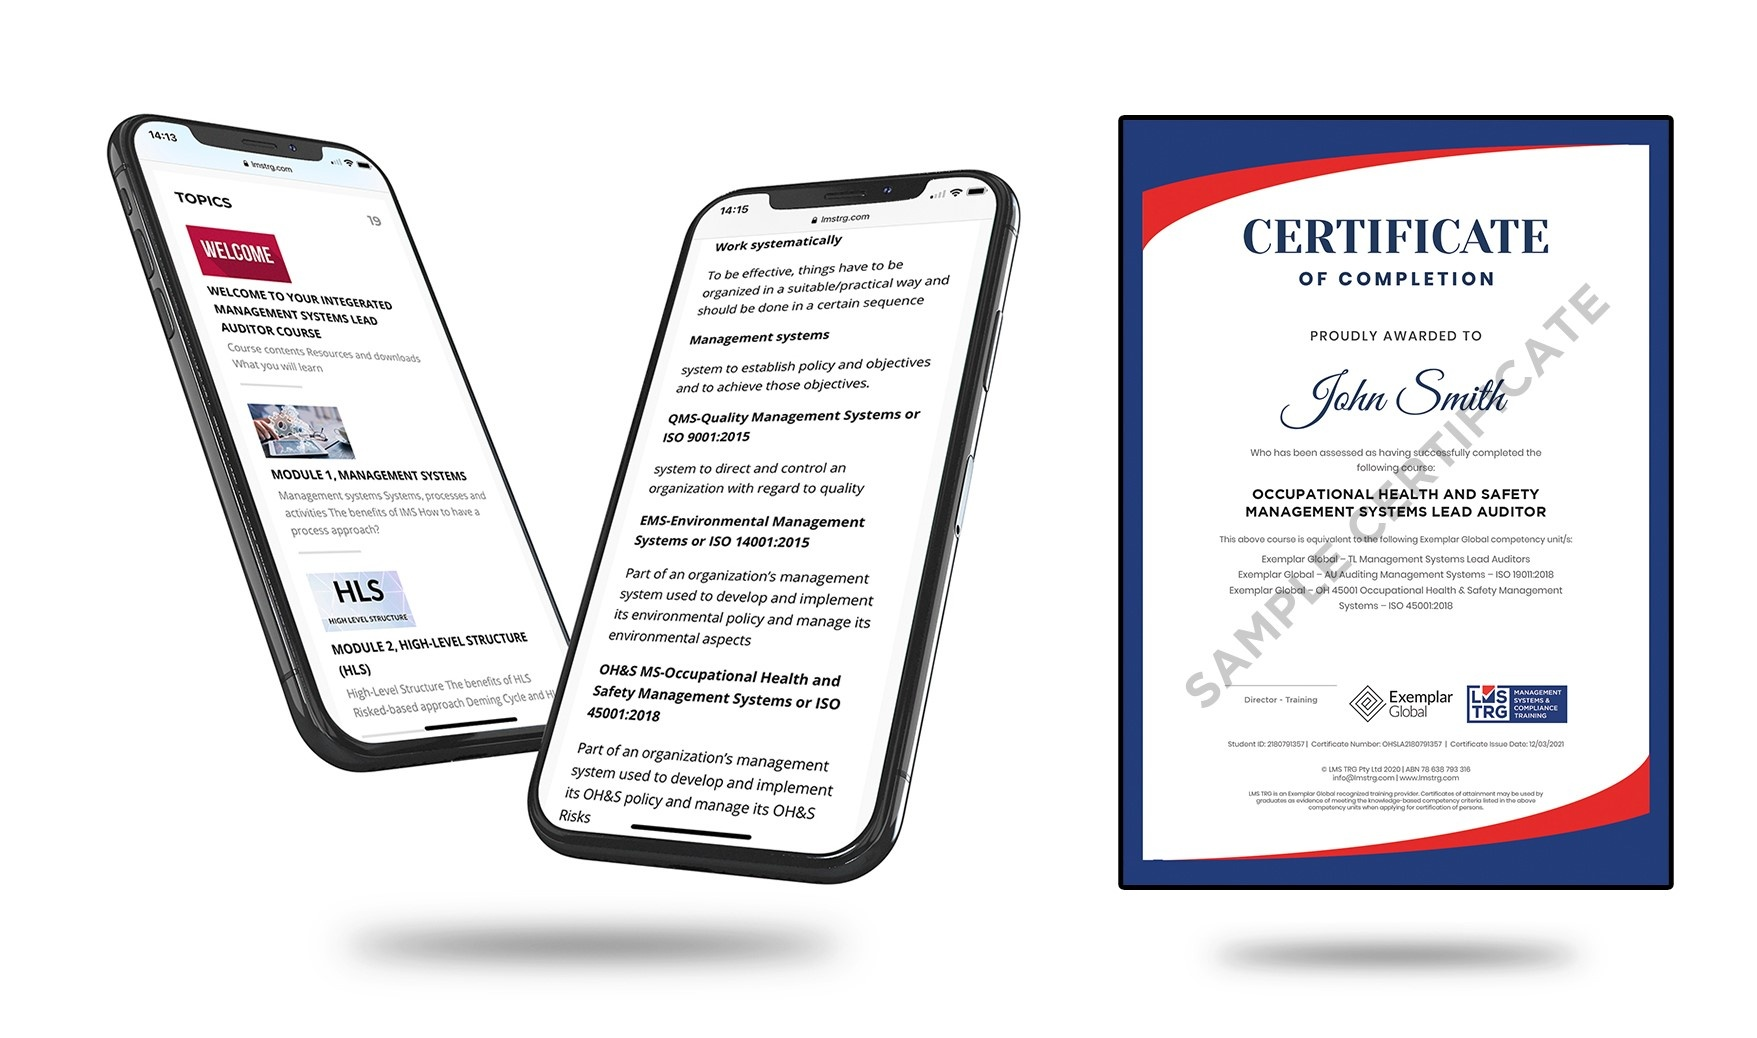 ISO 45001 Occupational Health and Safety Management Systems (OH&S) Lead Auditor ISO Online Certificate